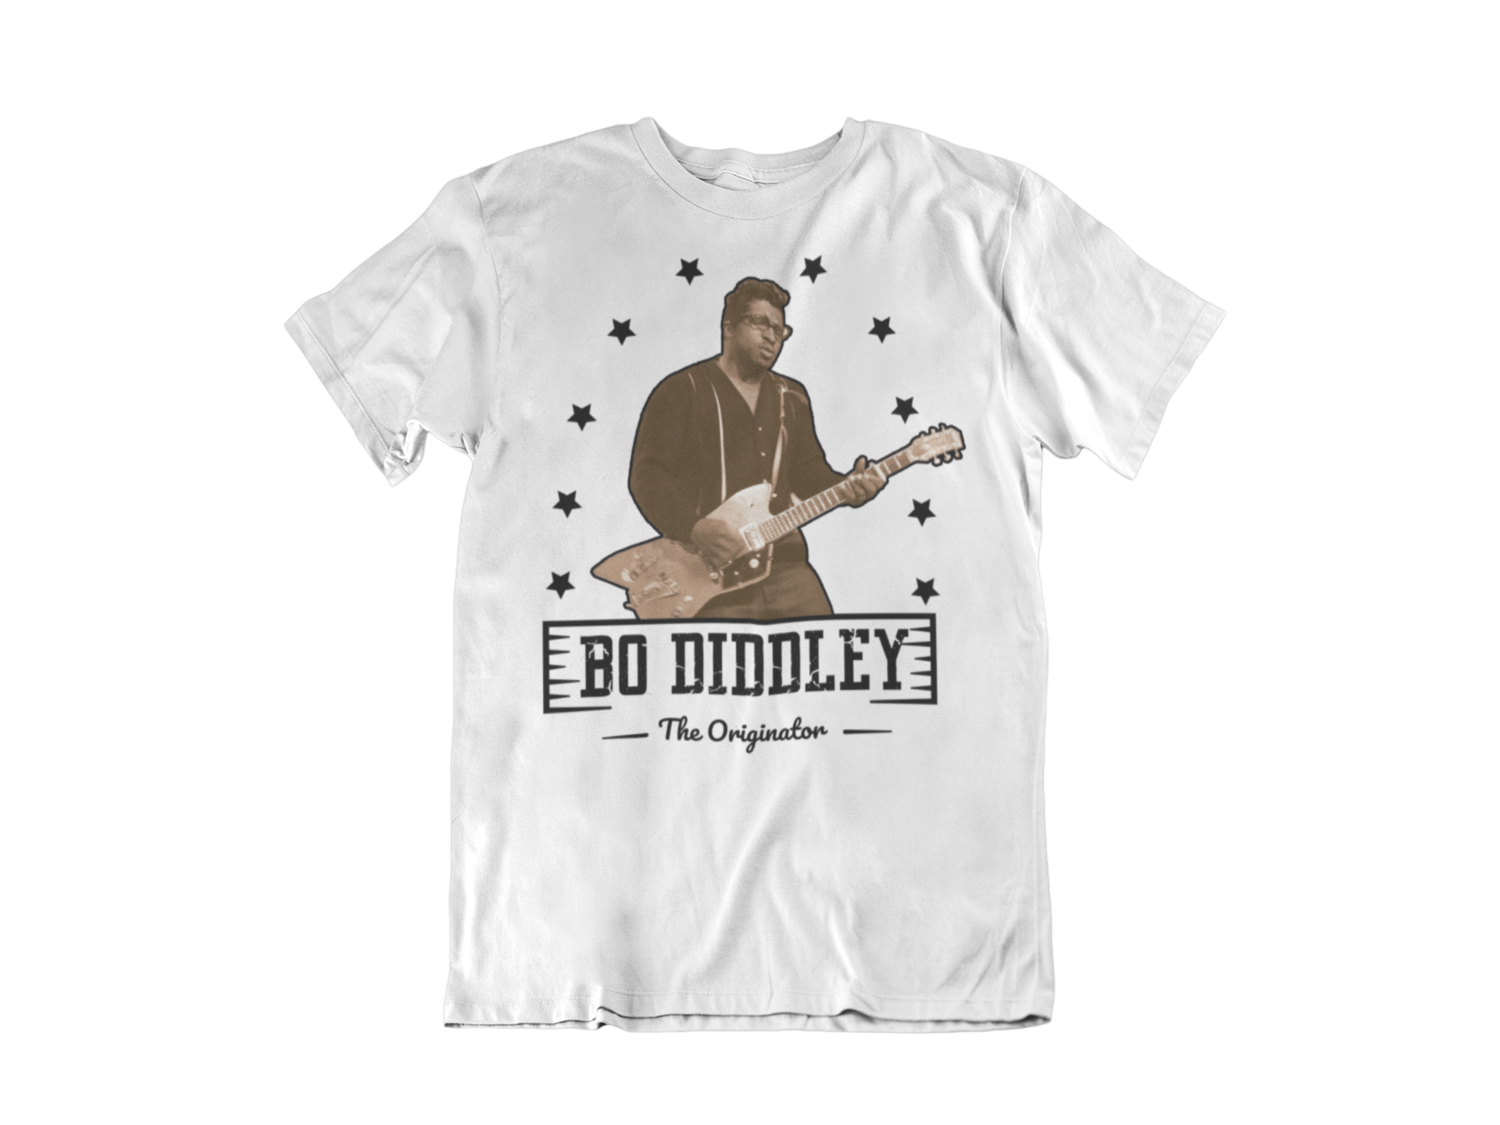 BO DIDDLEY T-SHIRT FOR MEN